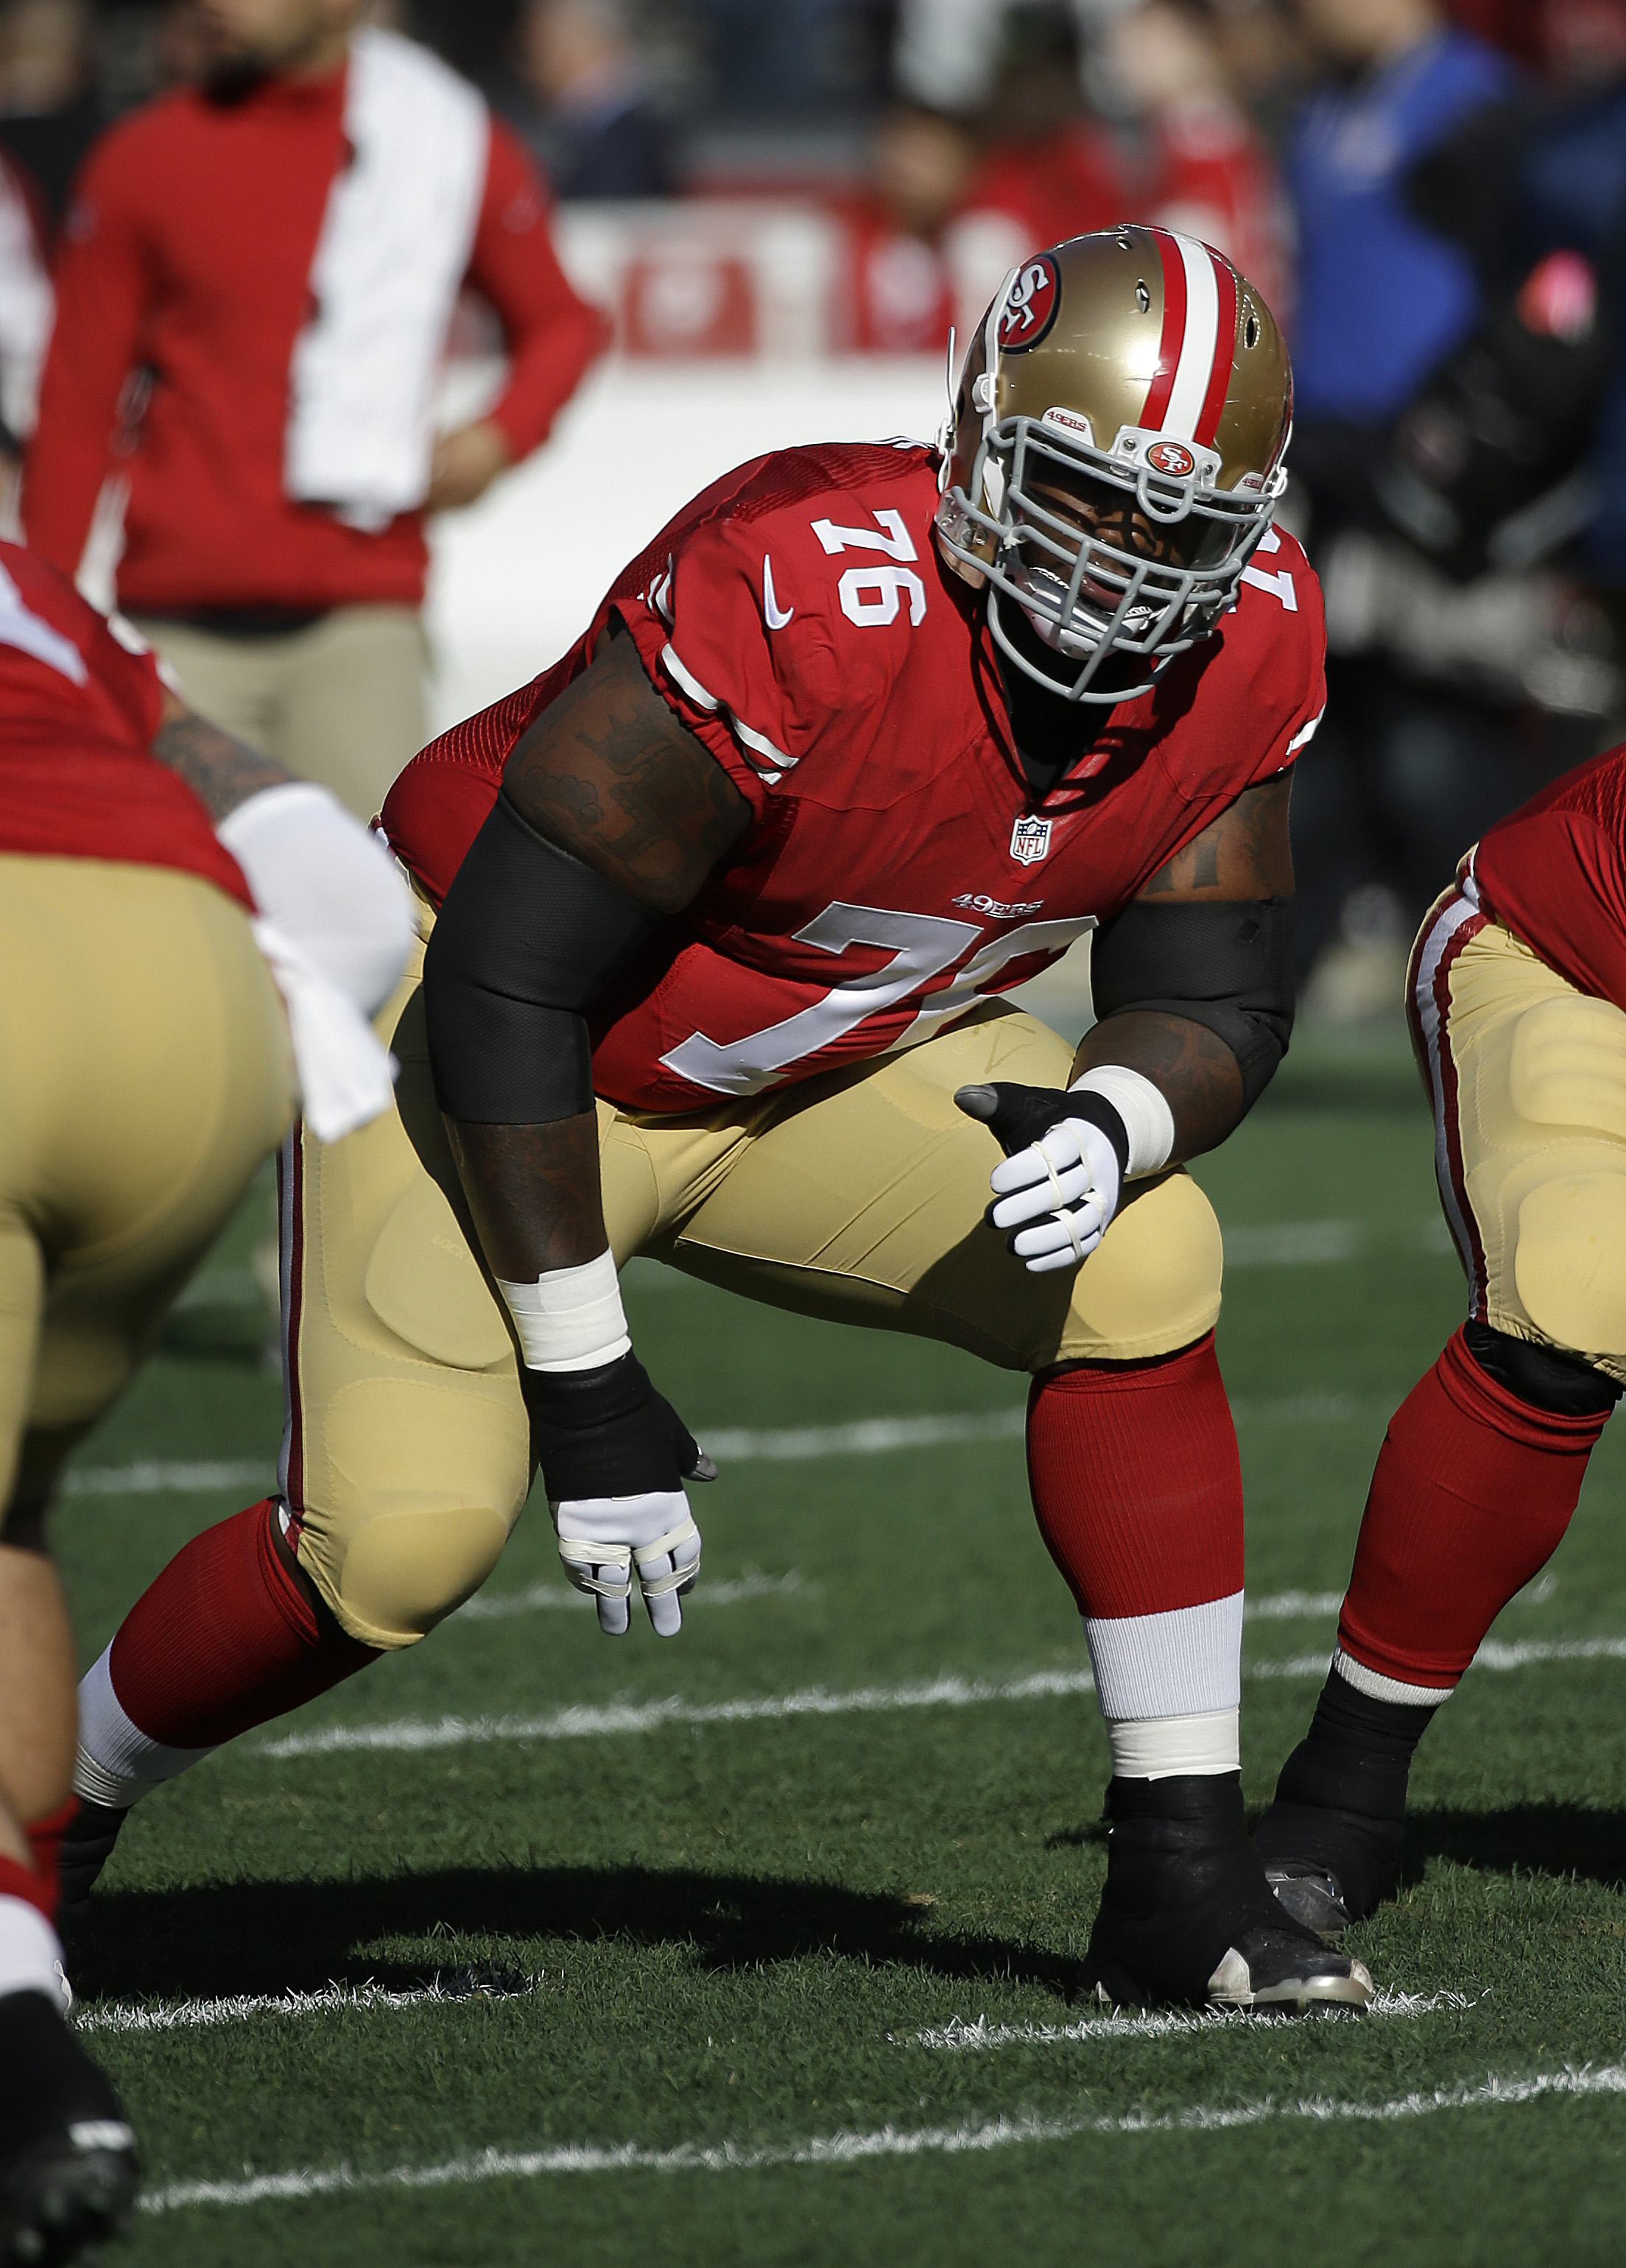 San Francisco 49ers offensive tackle Anthony Davis (76) before an NFL football game against the Arizona Cardinals in Santa Clara, Calif., Sunday, Dec. 28, 2014. (AP Photo/Marcio Jose Sanchez)